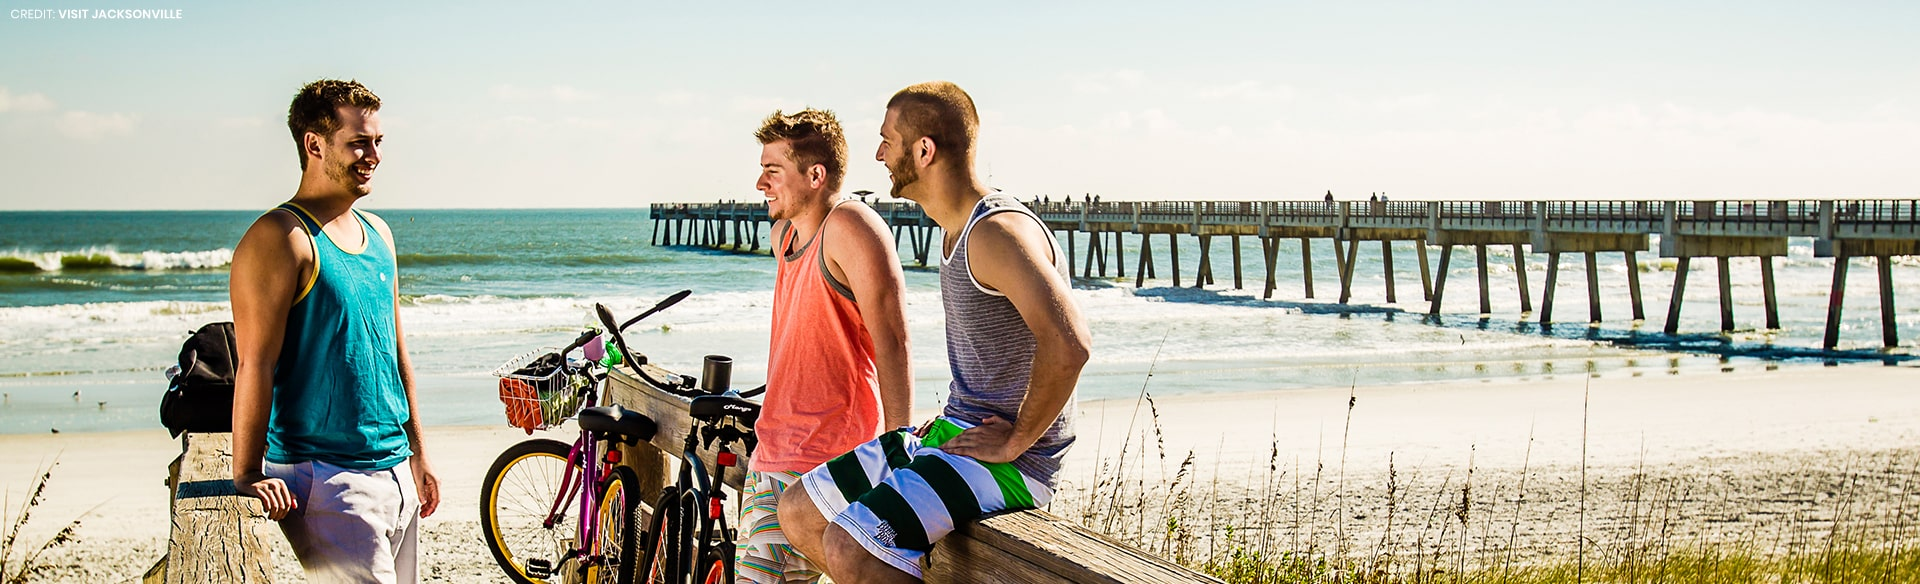 3 guys talking on boardwalk on the beach with pier in background